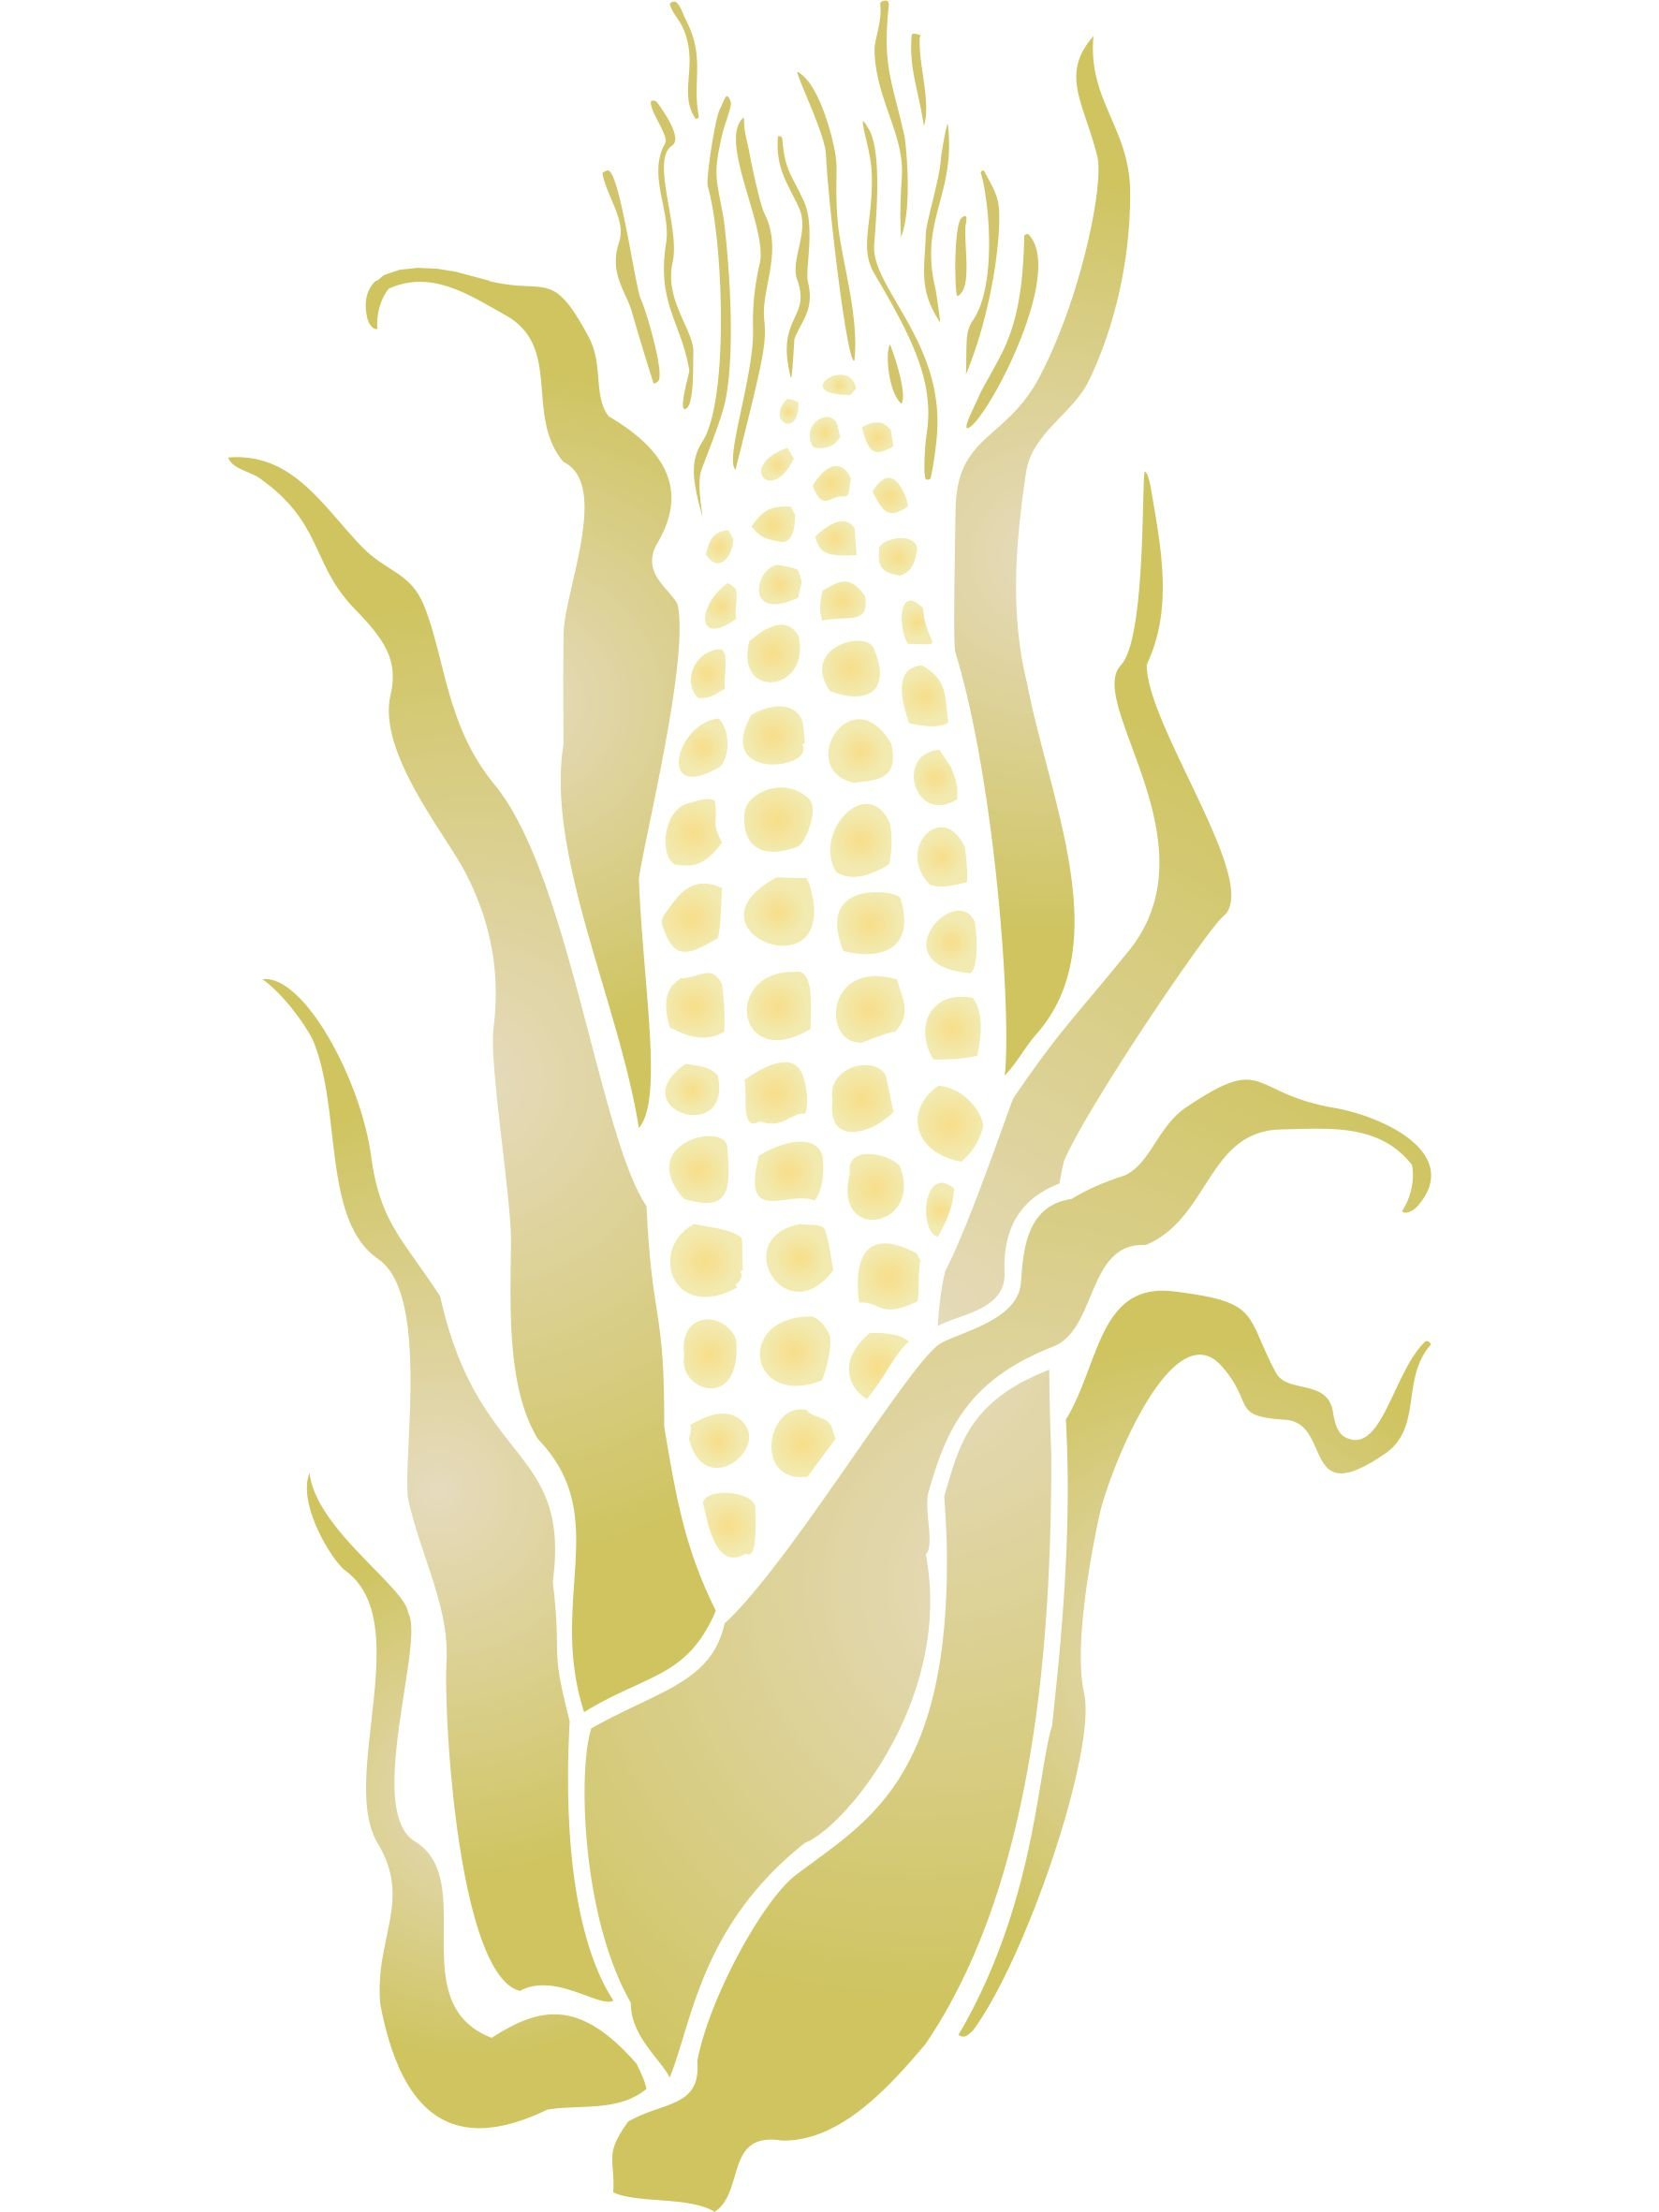 Sweet Corn Stencil - (size 6.5''w x 12''h) Reusable Wall Stencils for Painting - Best Quality Vegetable Kitchen Stencil Ideas - Use on Walls, Floors, Fabrics, Glass, Wood, Terracotta, and More... by Stencils for Walls